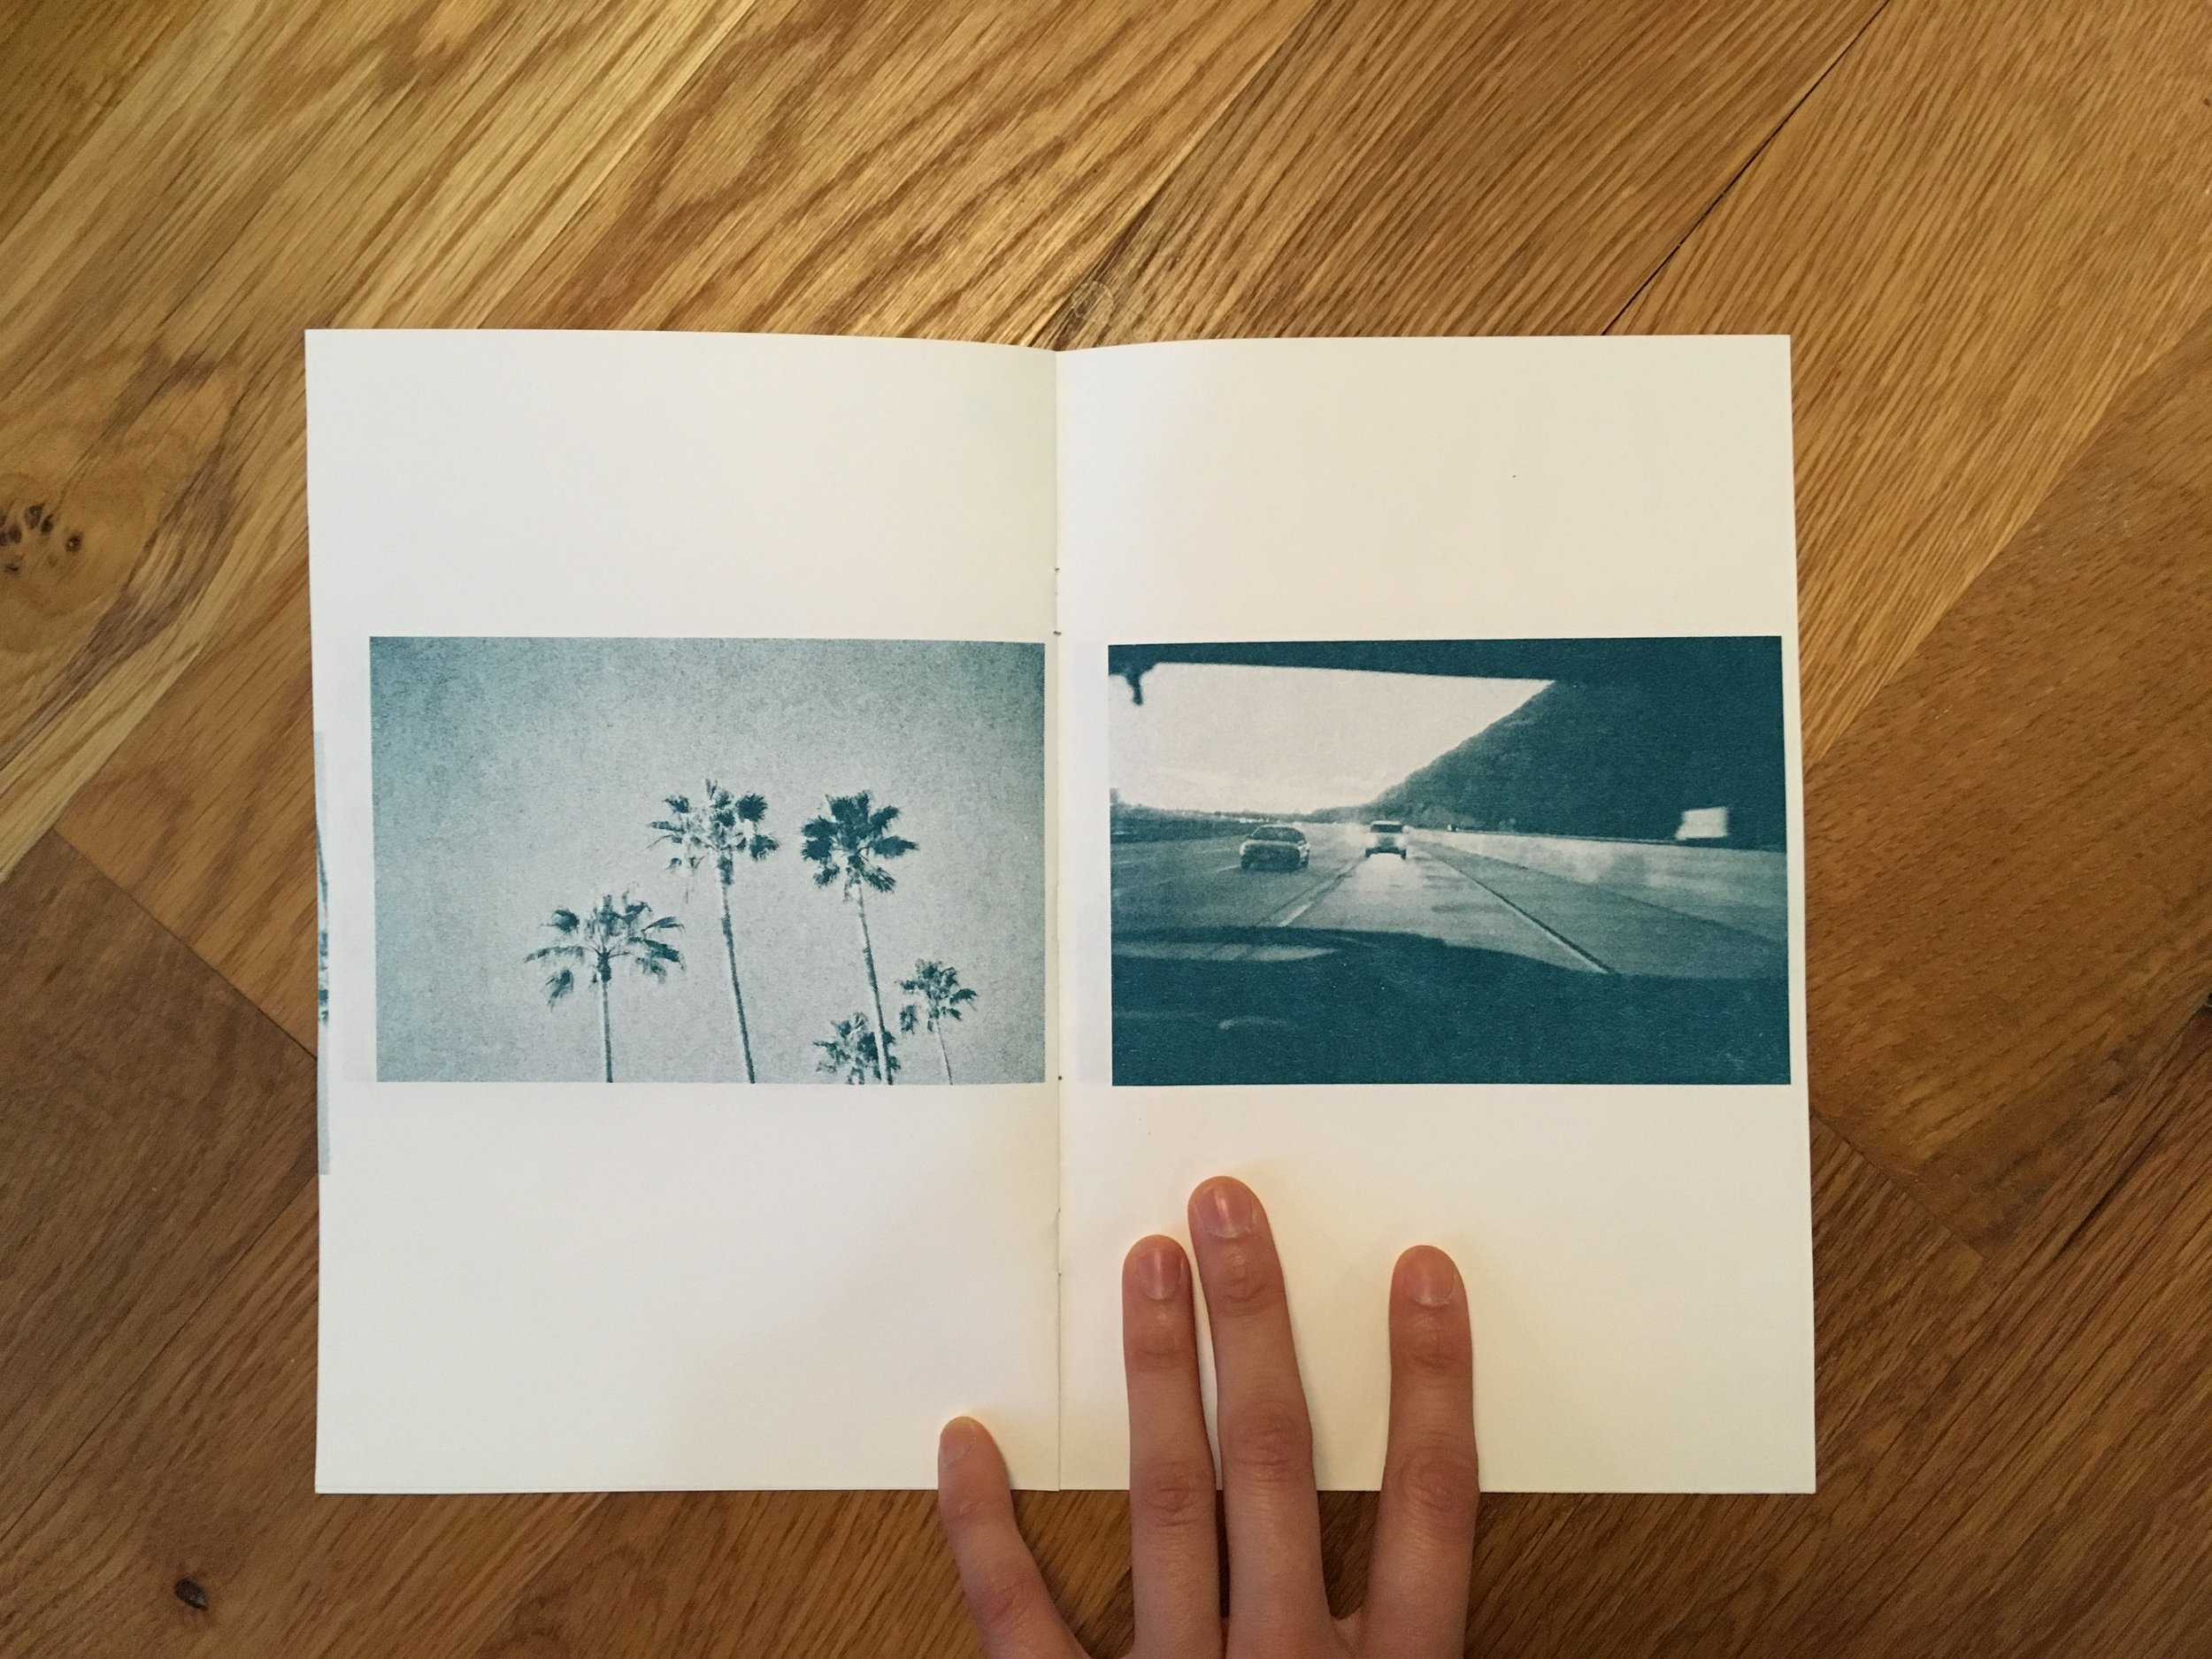 A risograph printed zine of film photographs taken in my hometown in Southern California.